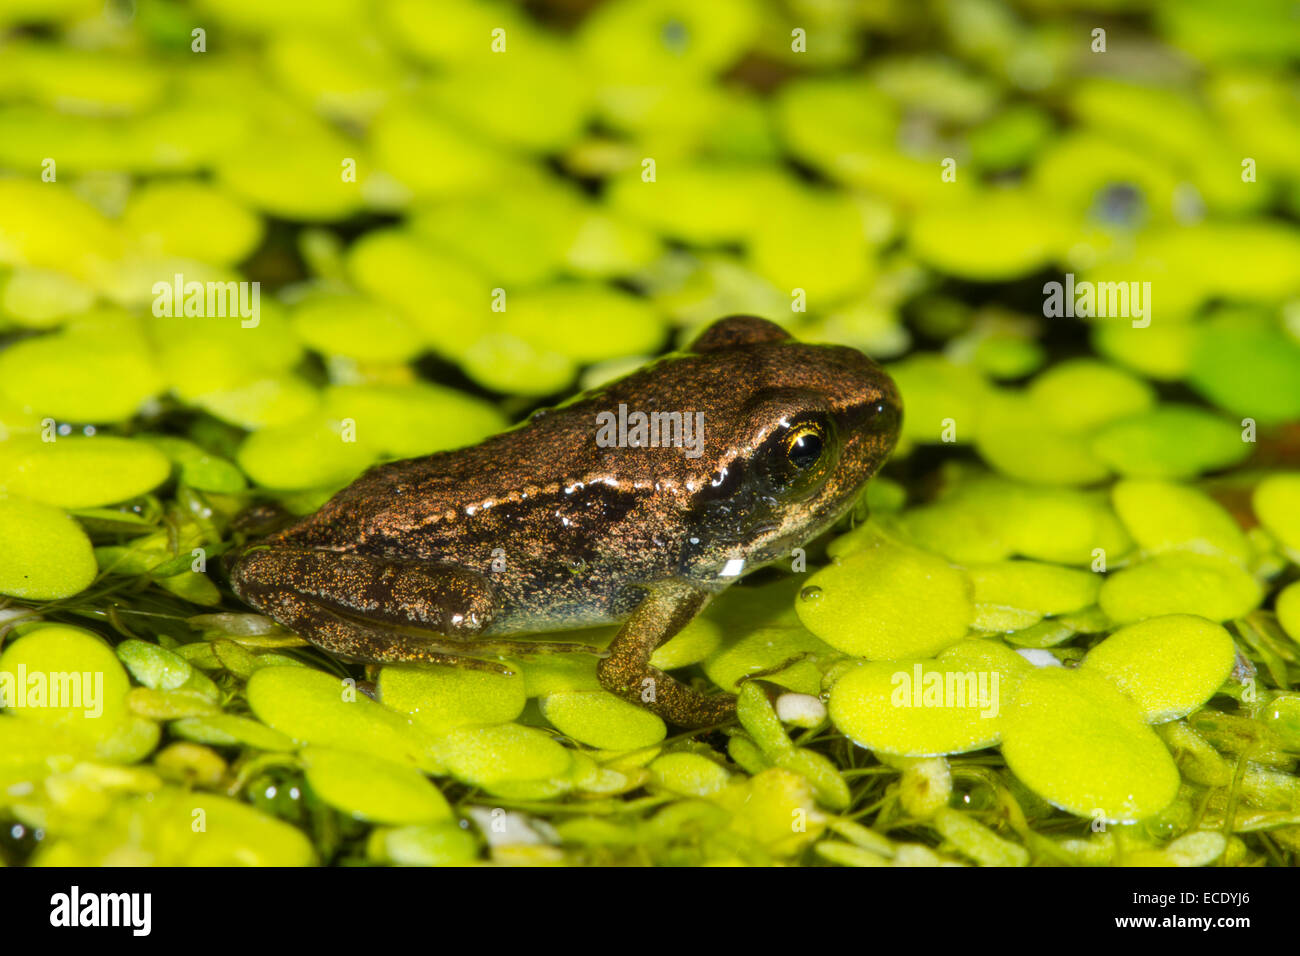 Common Frog (Rana temporaria) froglet, on Duckweed (Lemna sp.) in a garden pond. Seaford, Sussex, England. July. - Stock Image